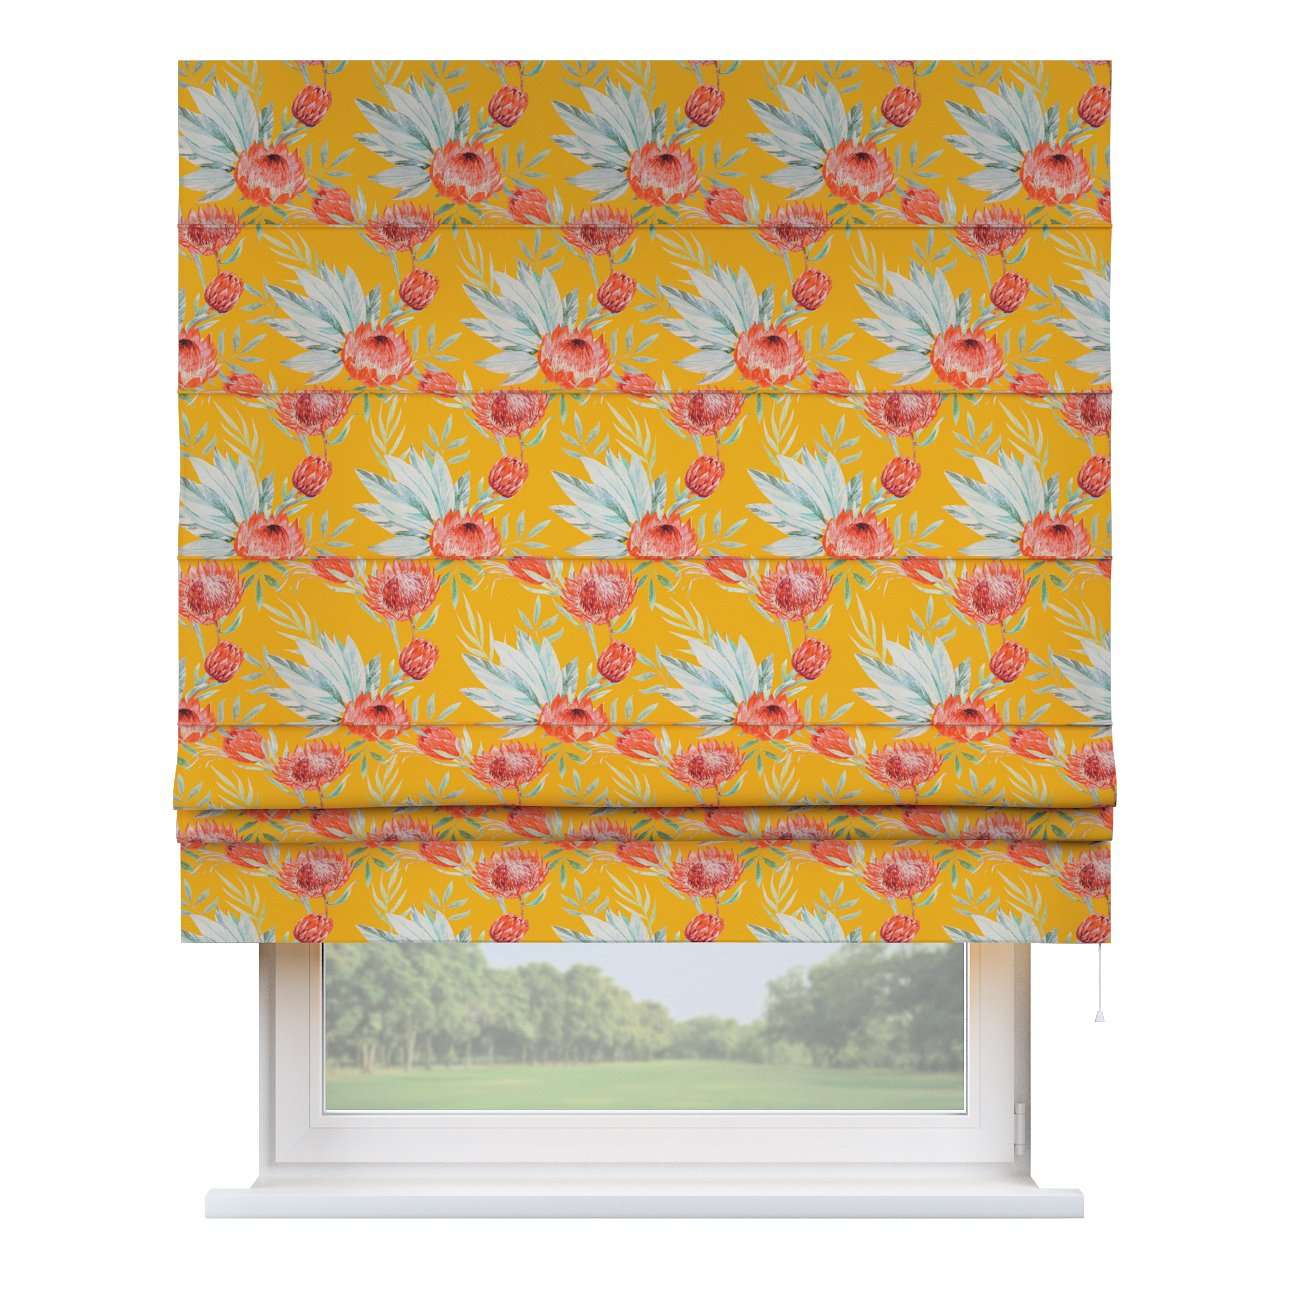 Padva roman blind  80 × 170 cm (31.5 × 67 inch) in collection New Art, fabric: 141-58